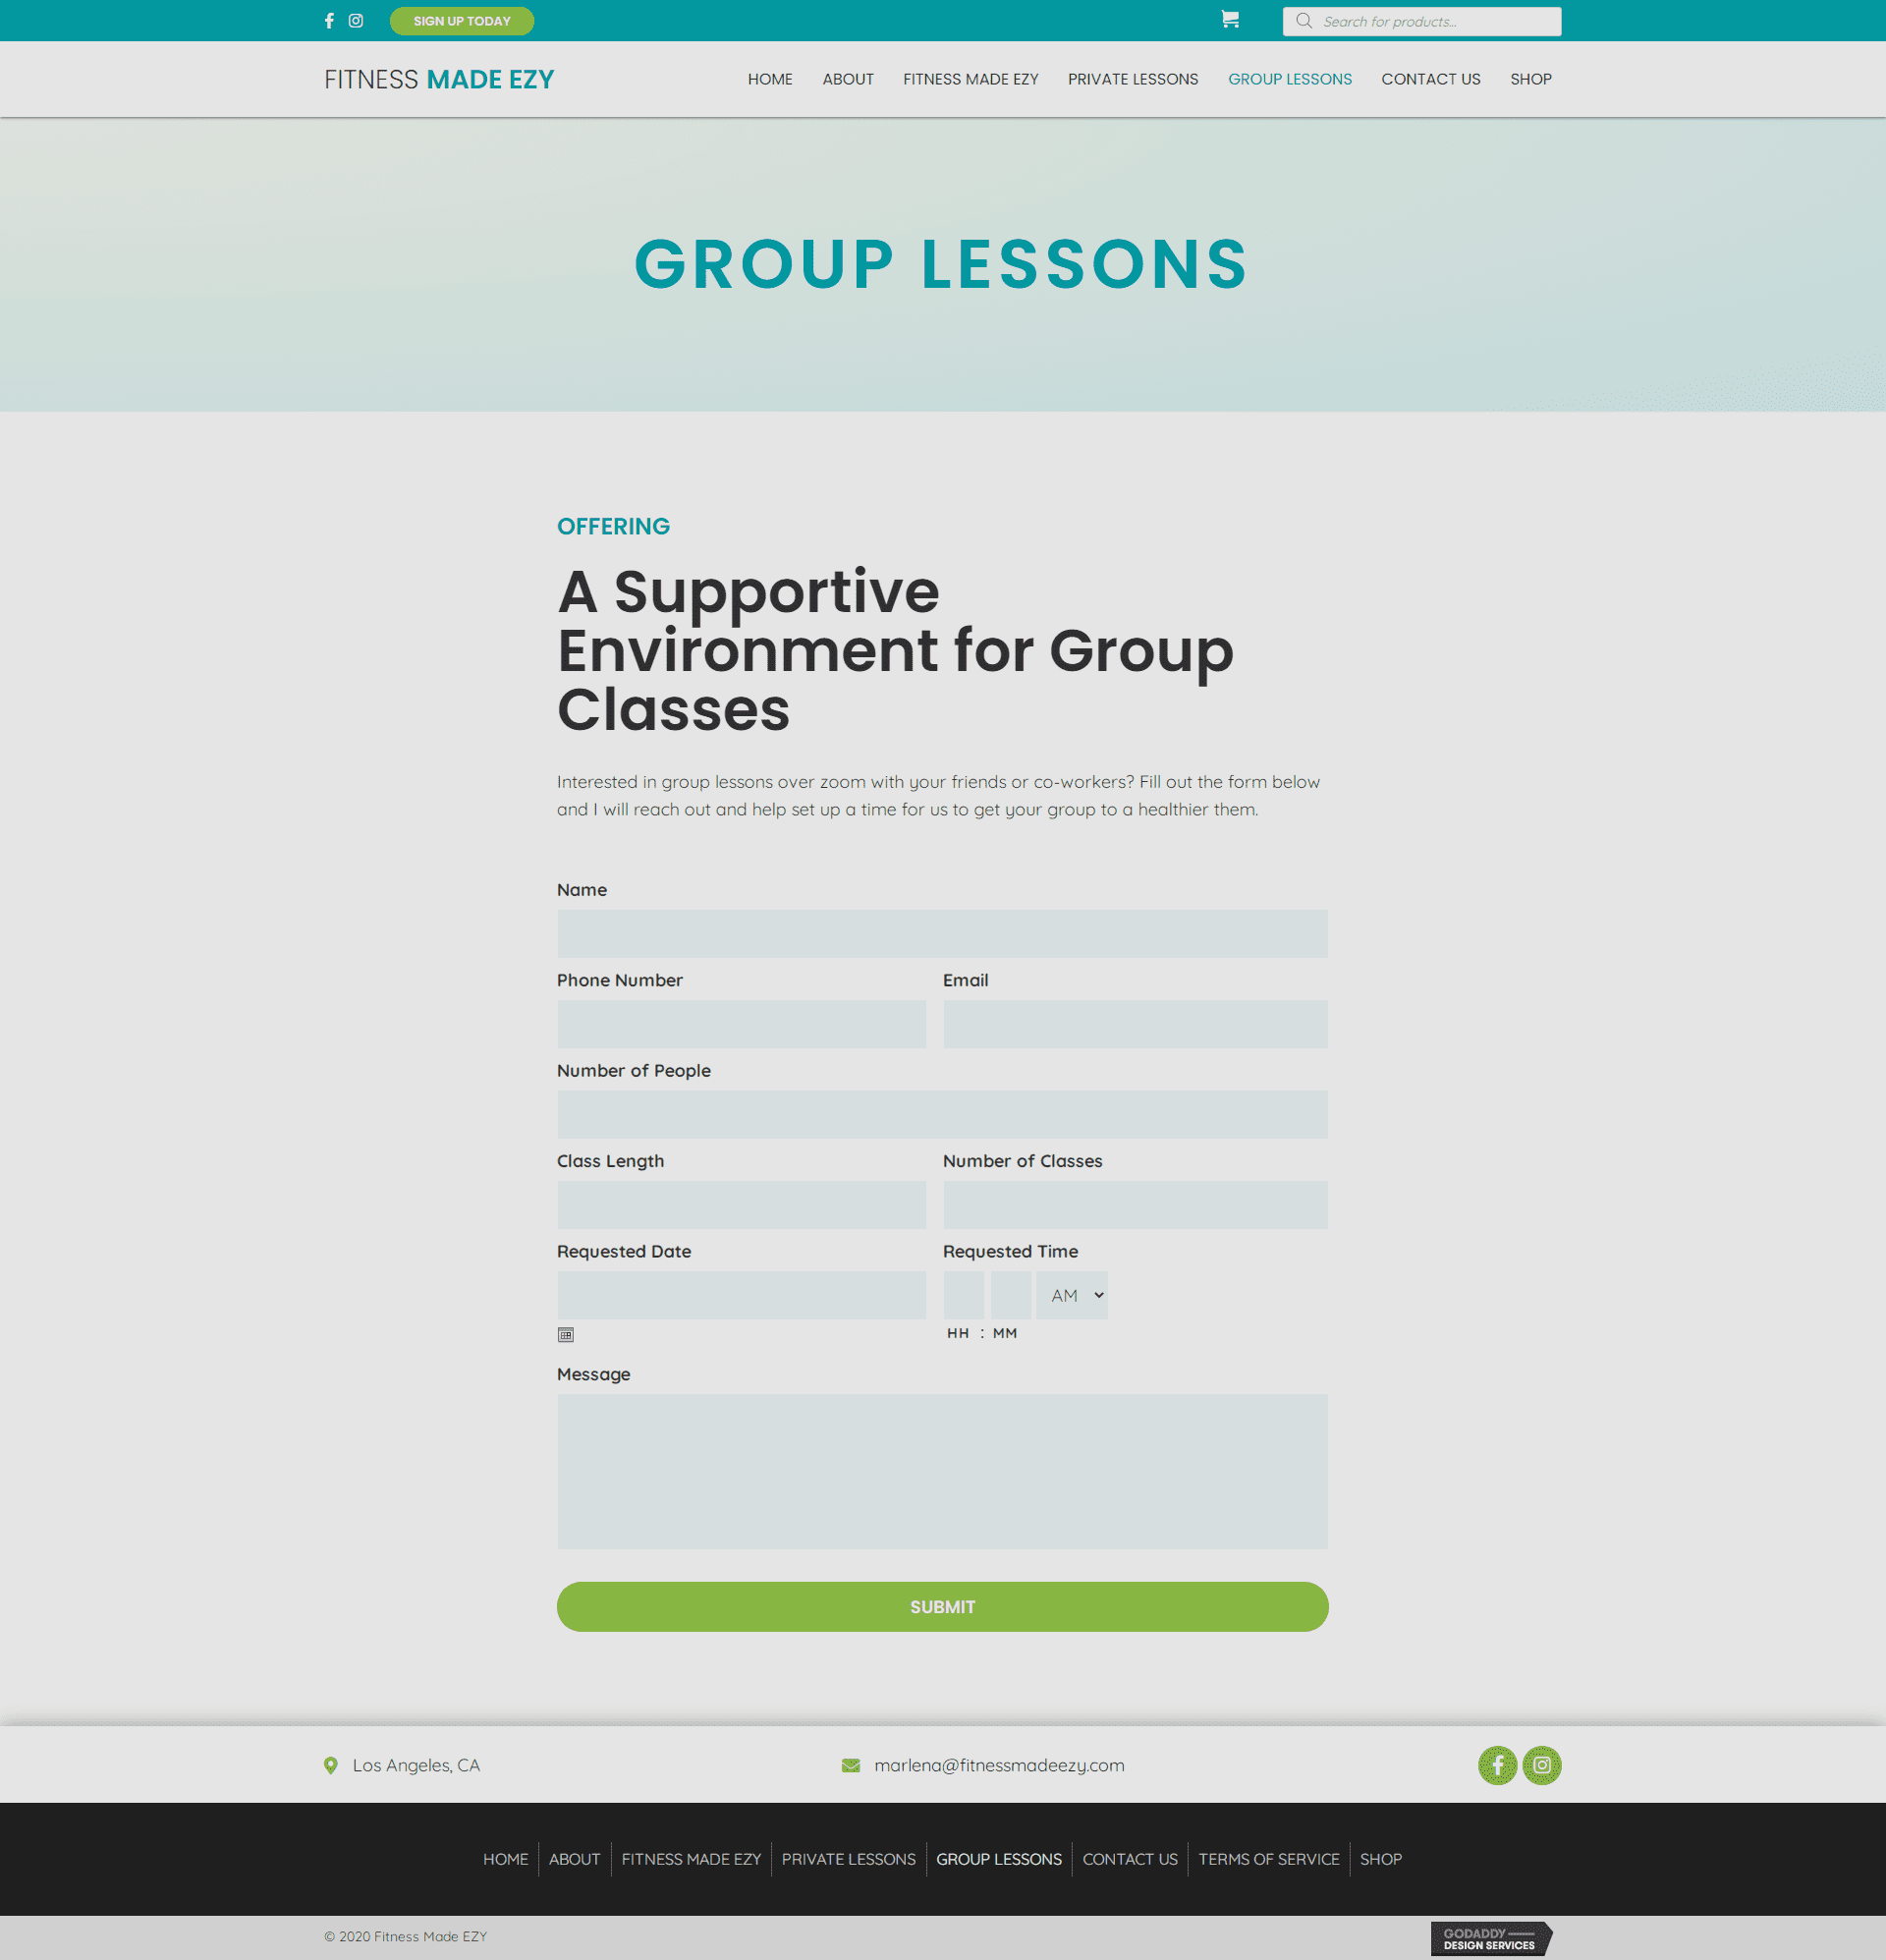 Fitness Made EZY Group Lessons Page